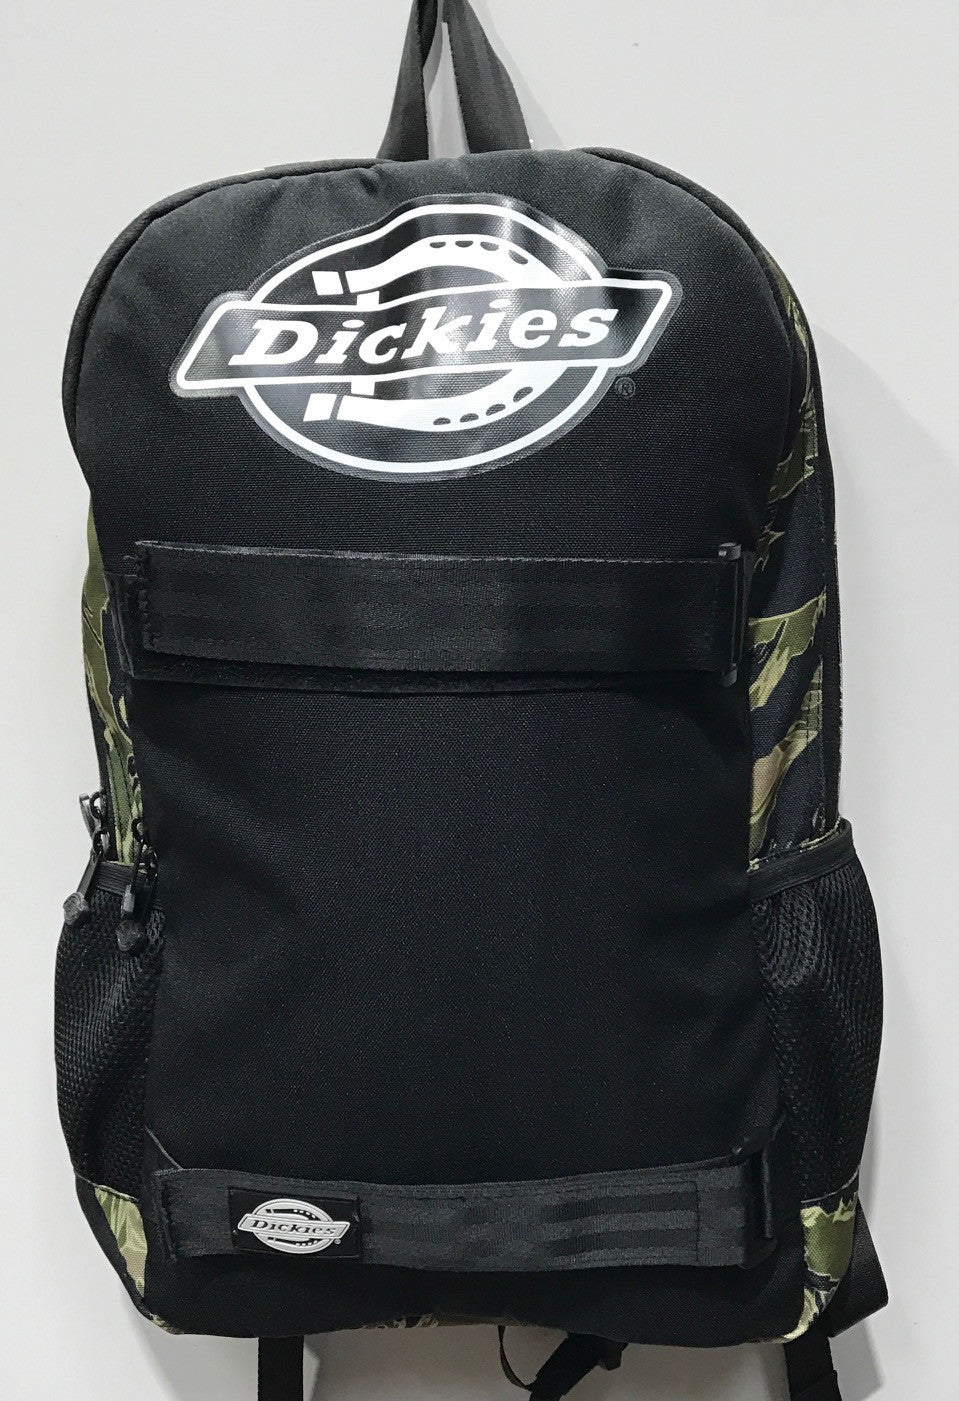 Dgk skate backpacks fenix toulouse handball jpg 959x1401 Complete skateboard  backpacks 84392ce4ca2fa